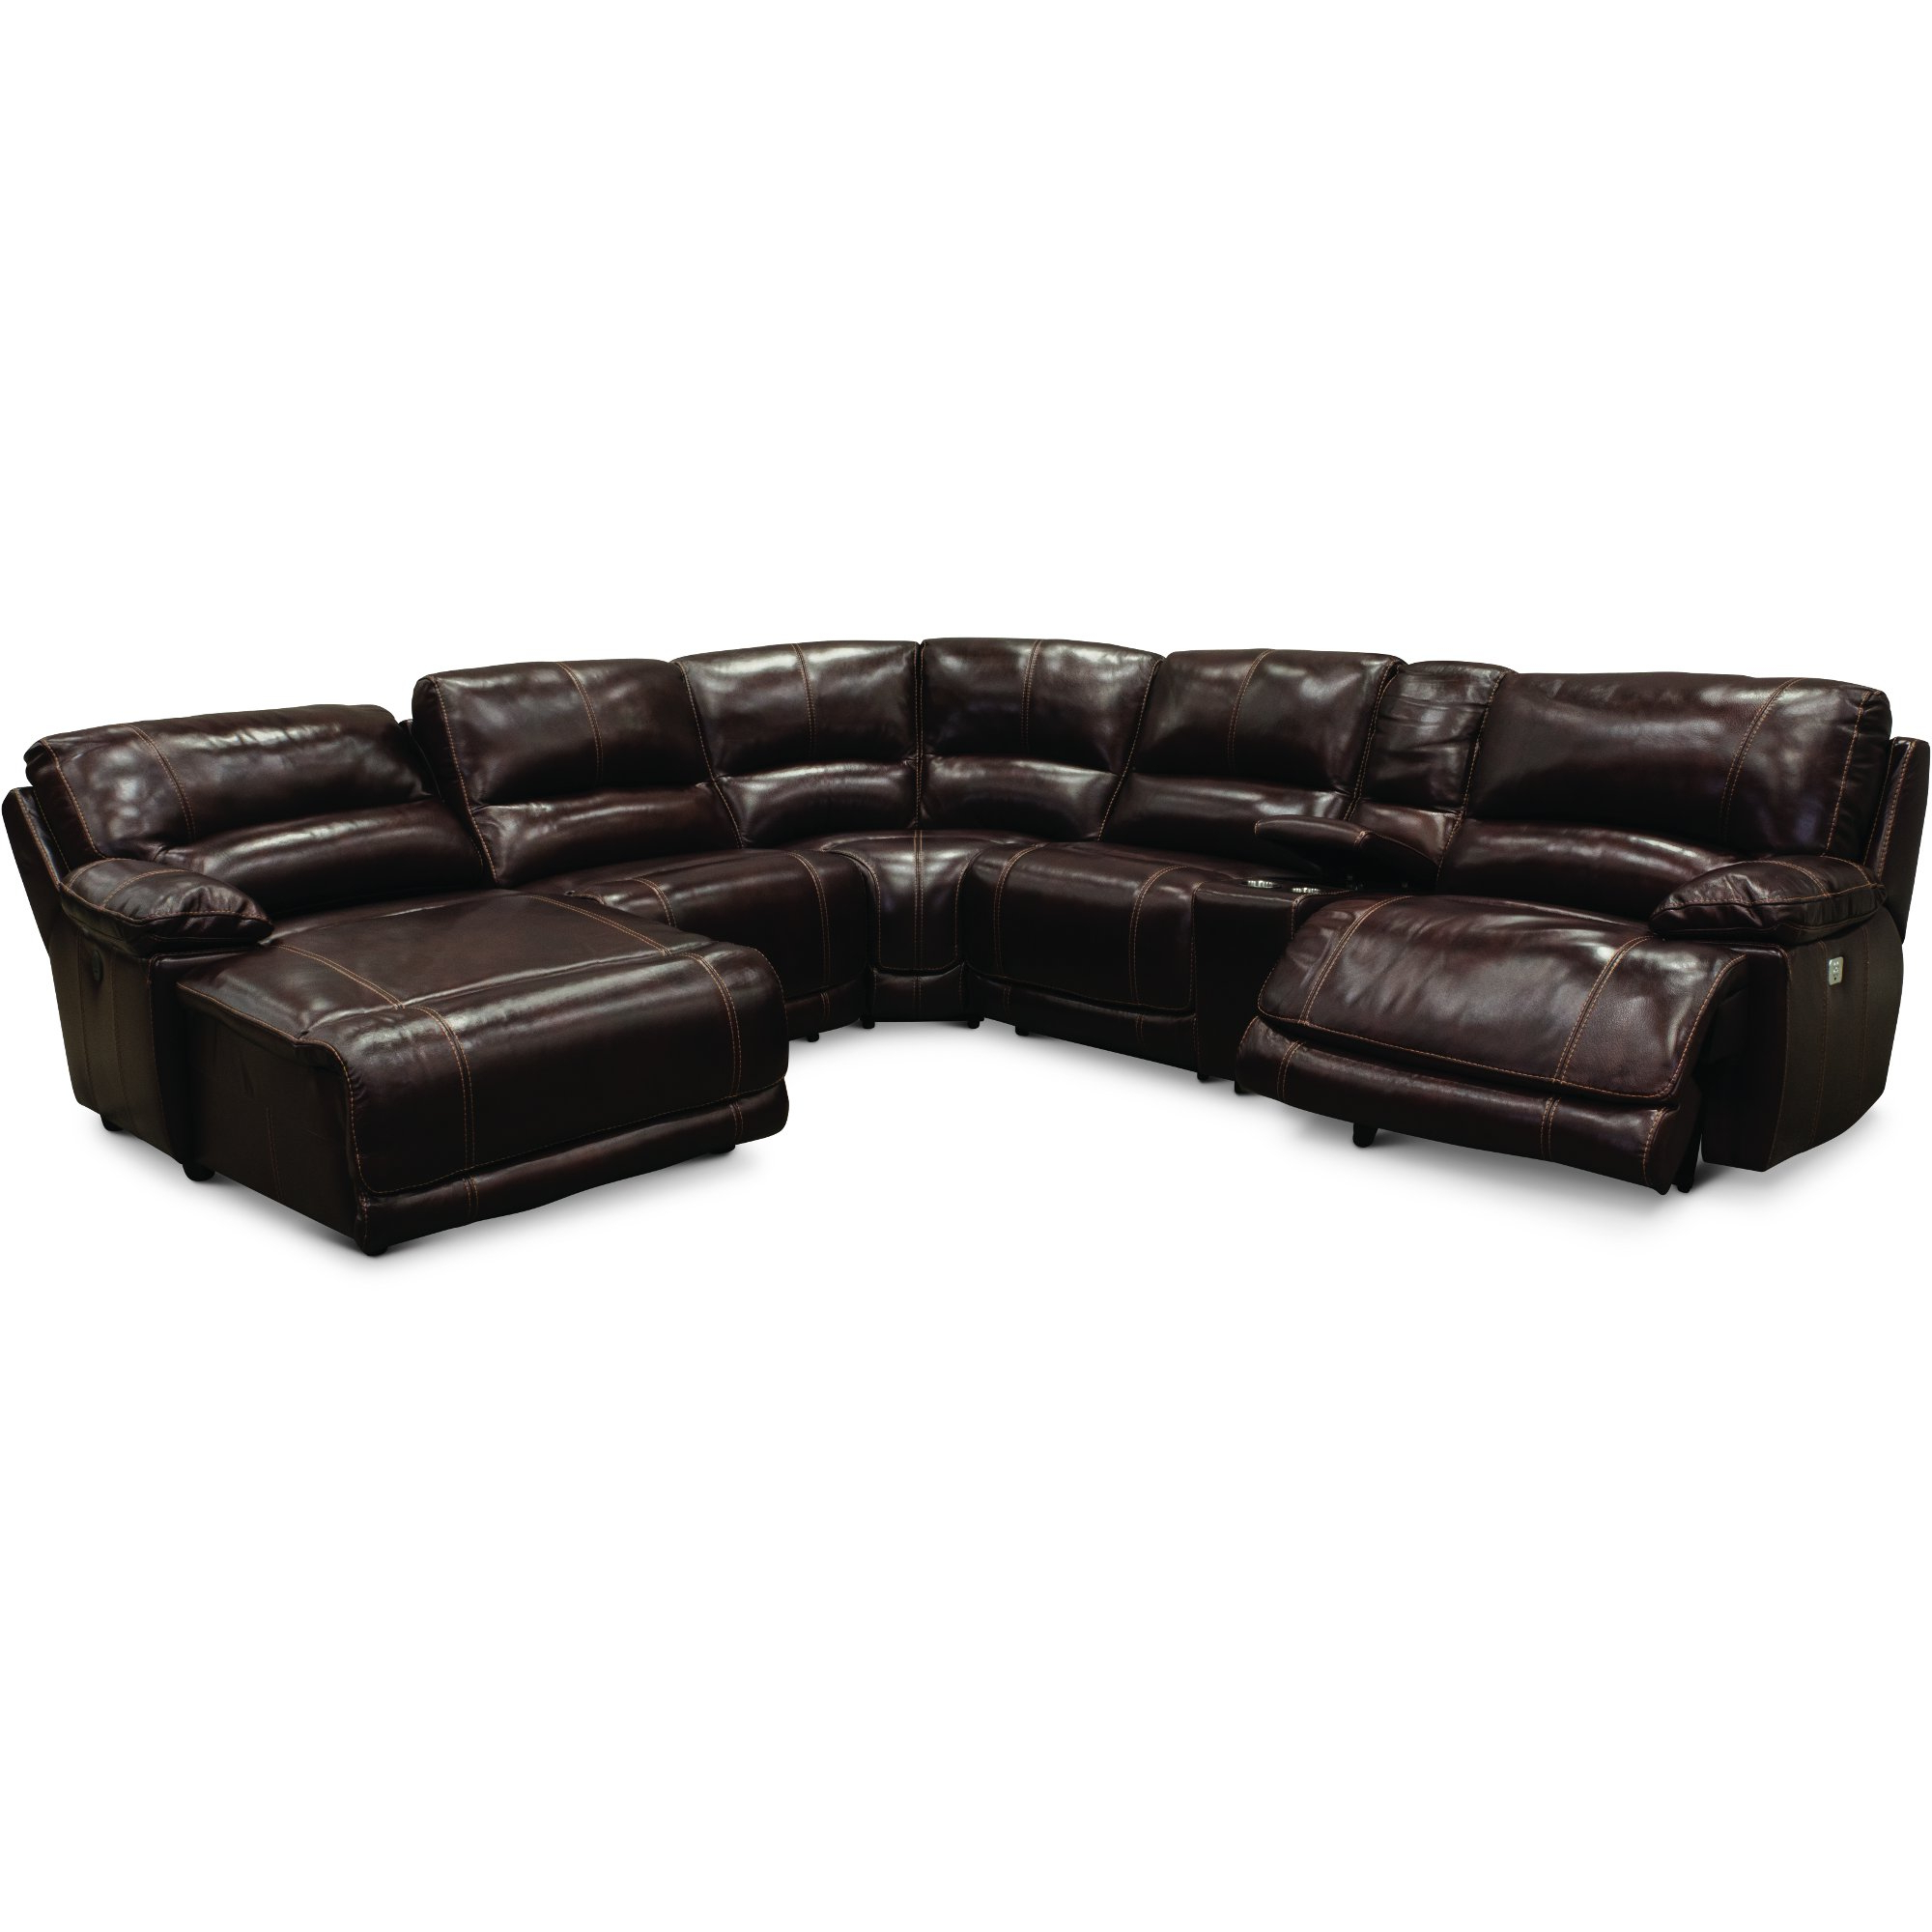 Rc Intended For Most Popular Jackson 6 Piece Power Reclining Sectionals (View 13 of 20)